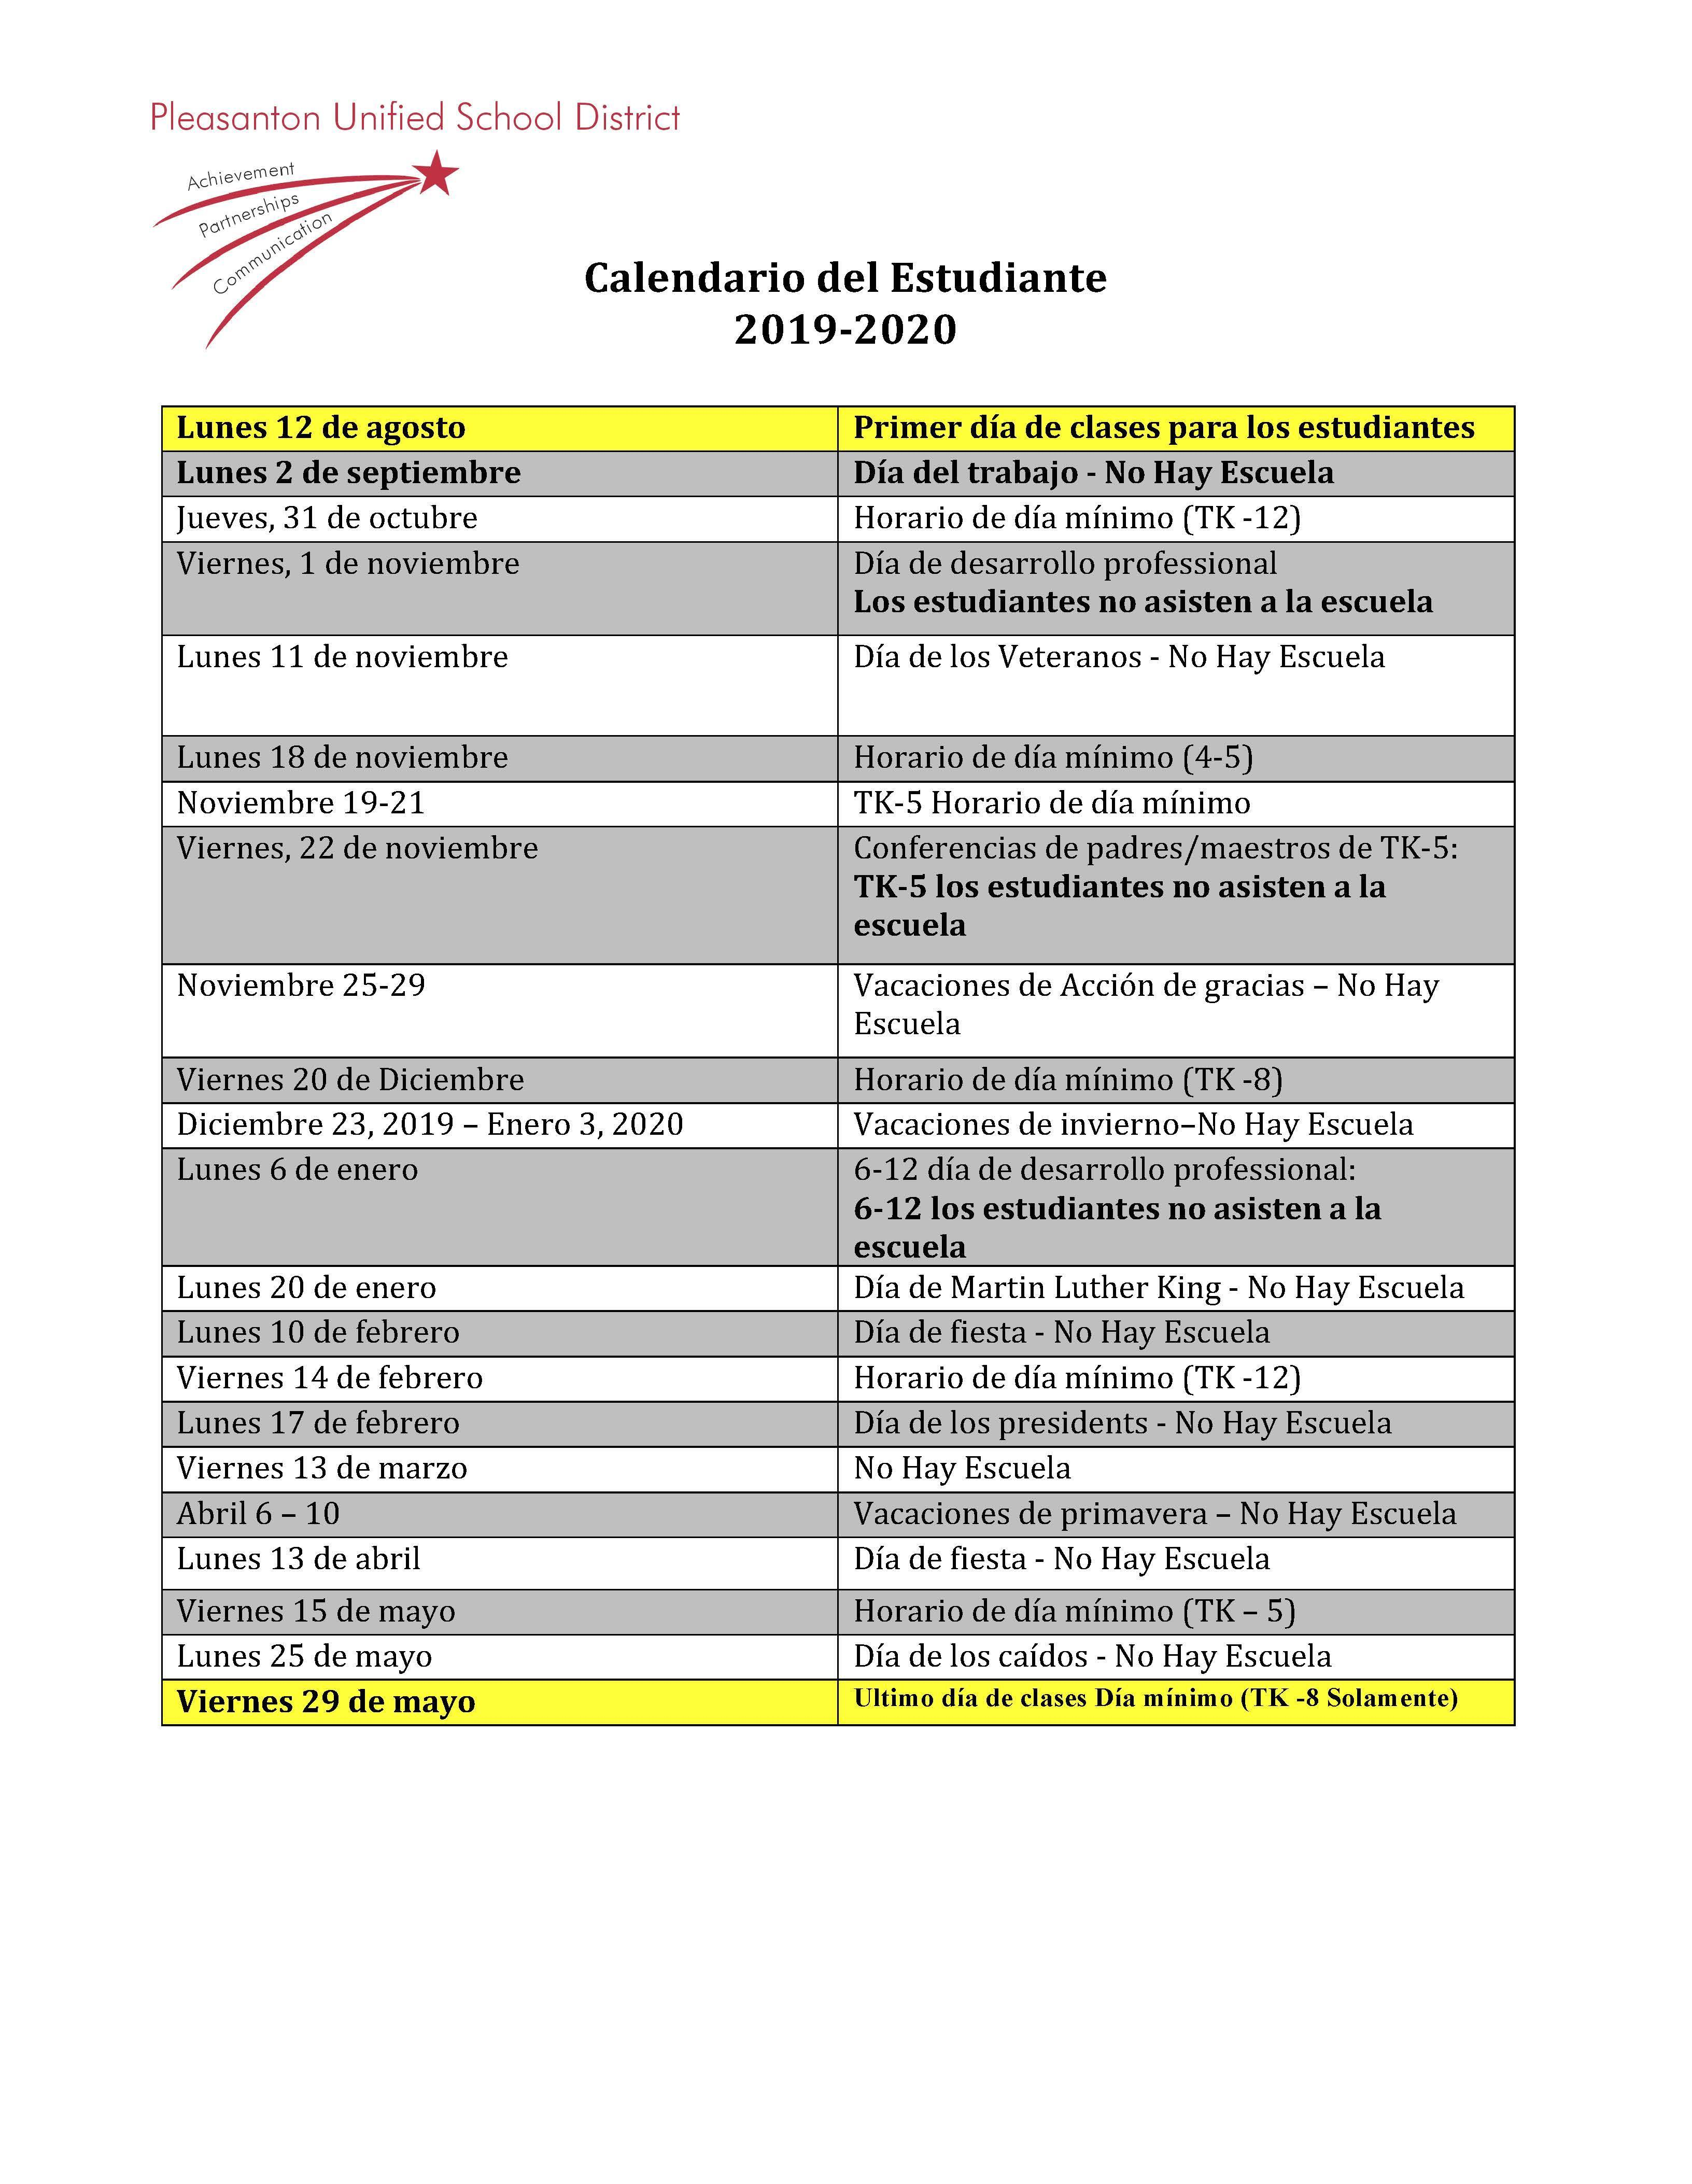 Calendario Concerti 2020.Calendars Miscellaneous Pleasanton Unified School District